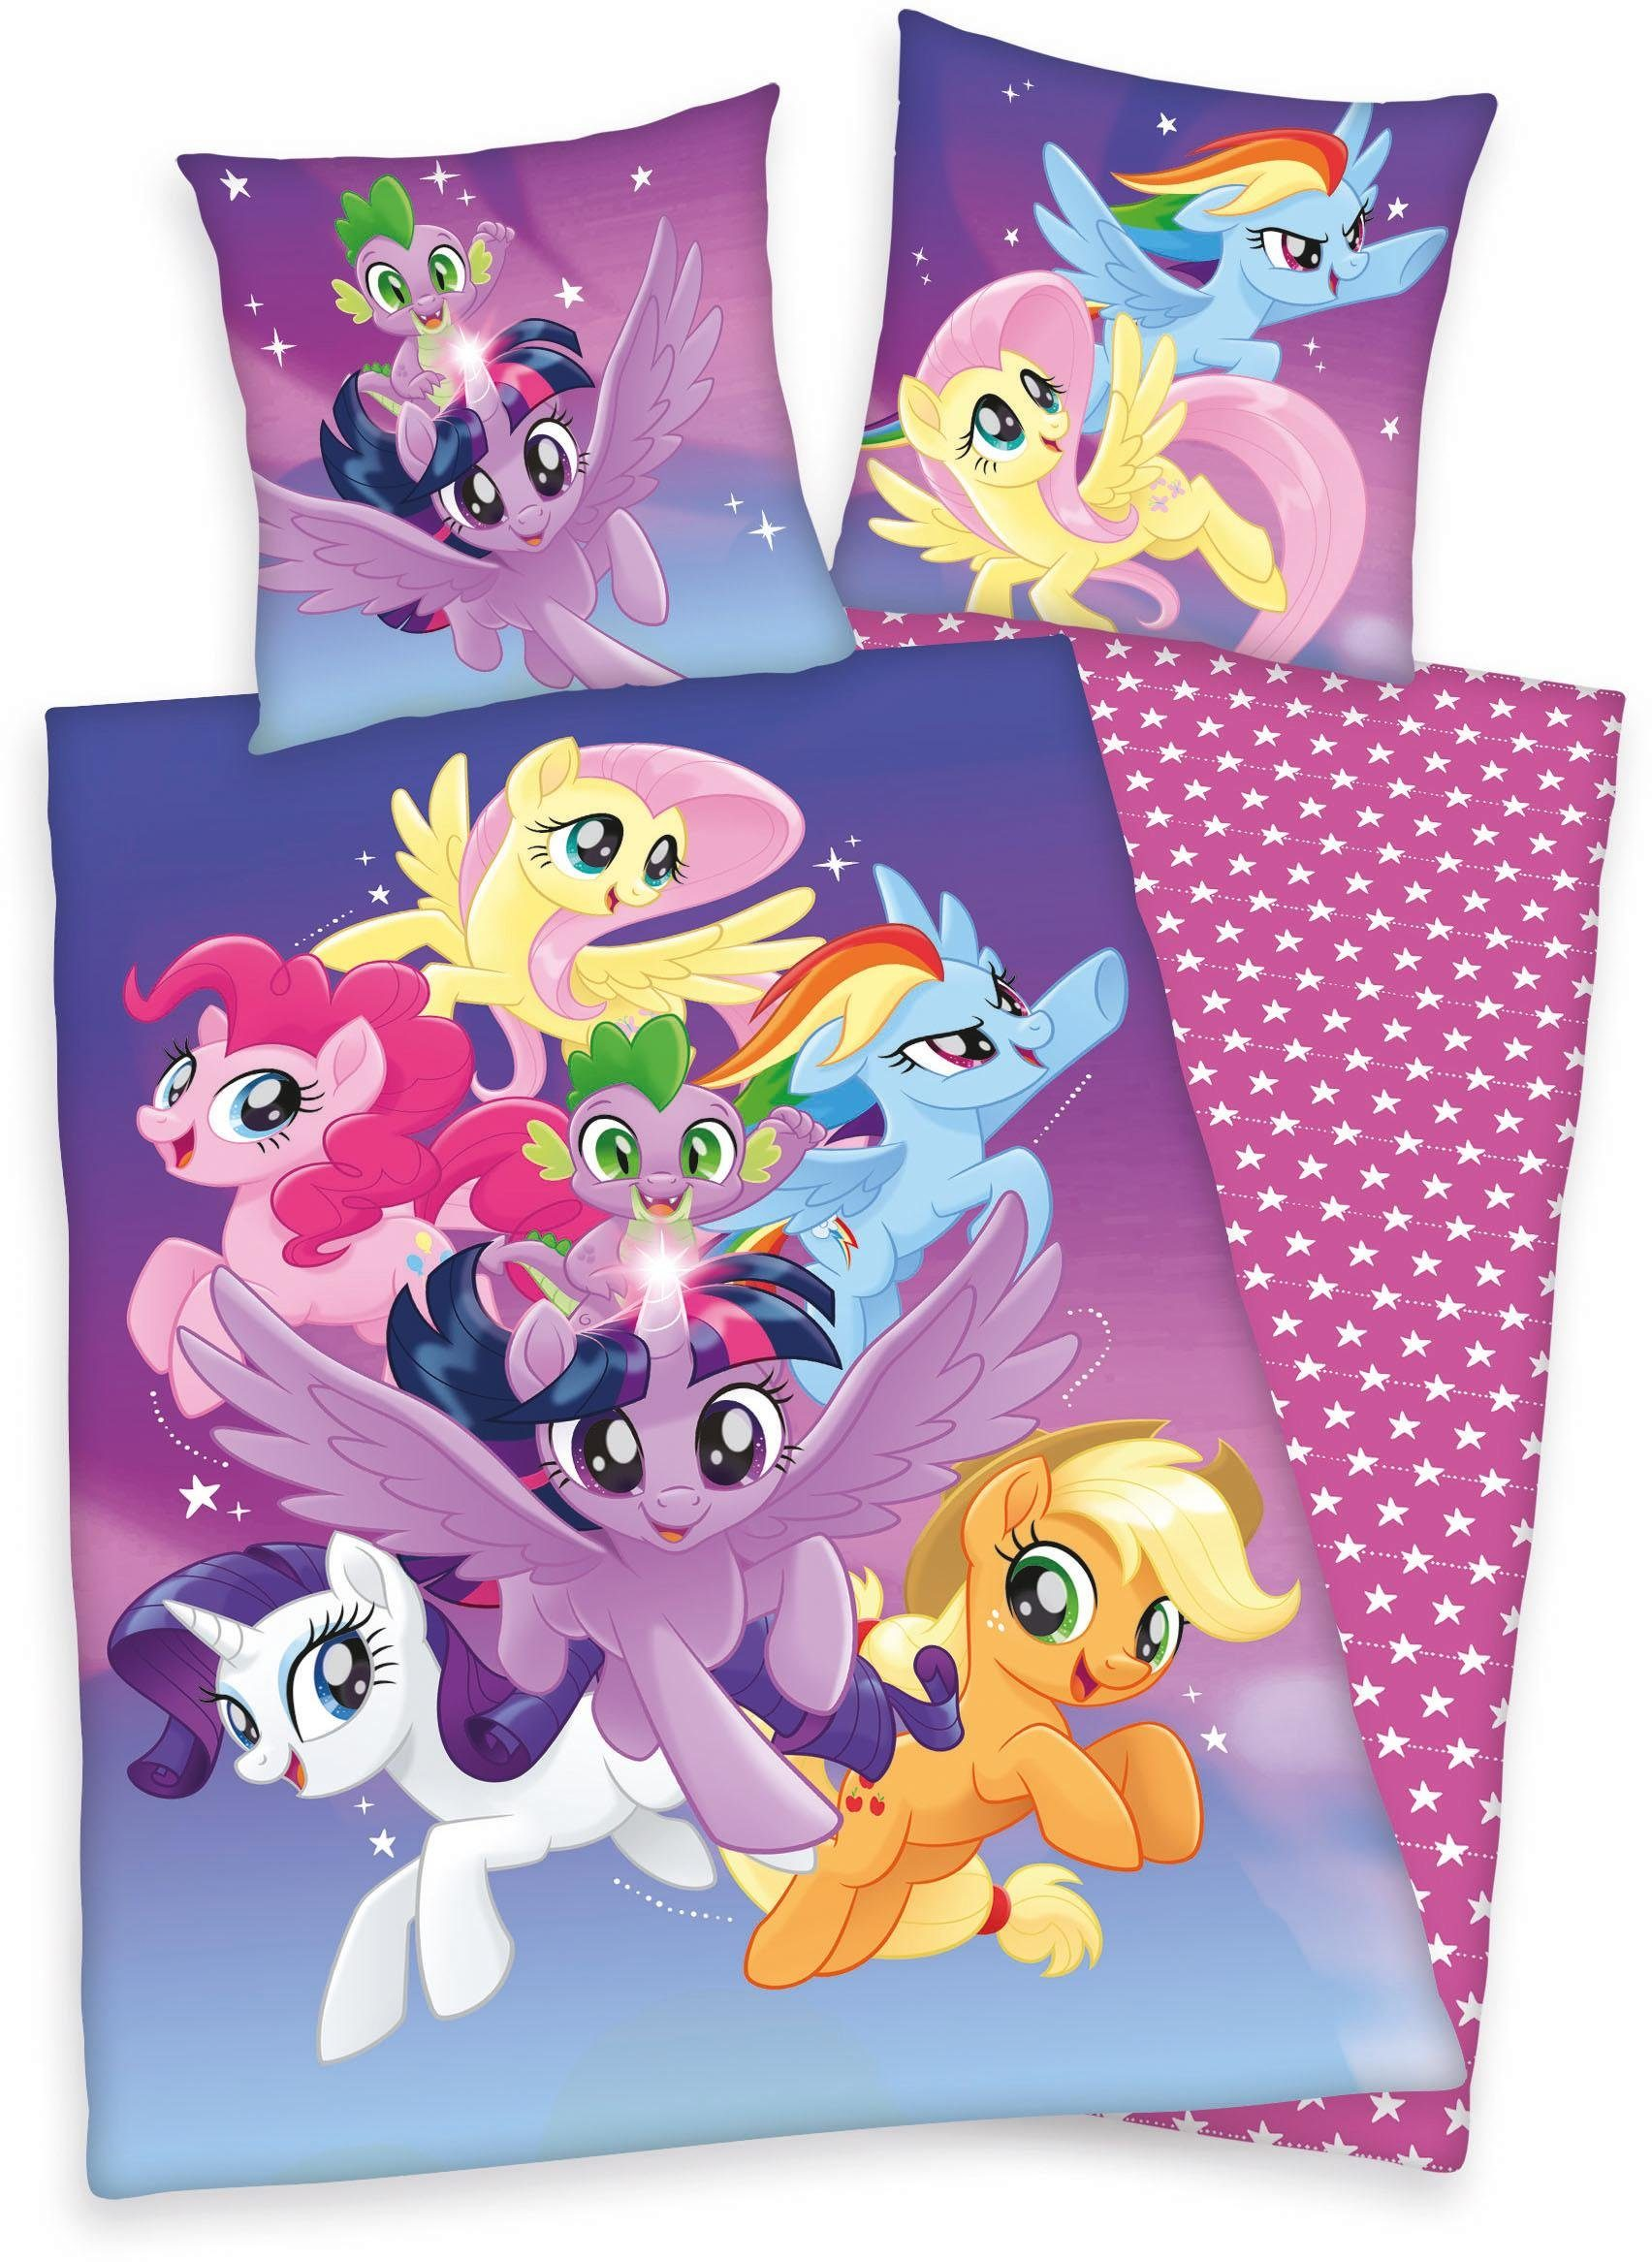 Kinderbettwäsche »My little Pony«, mi Motiv